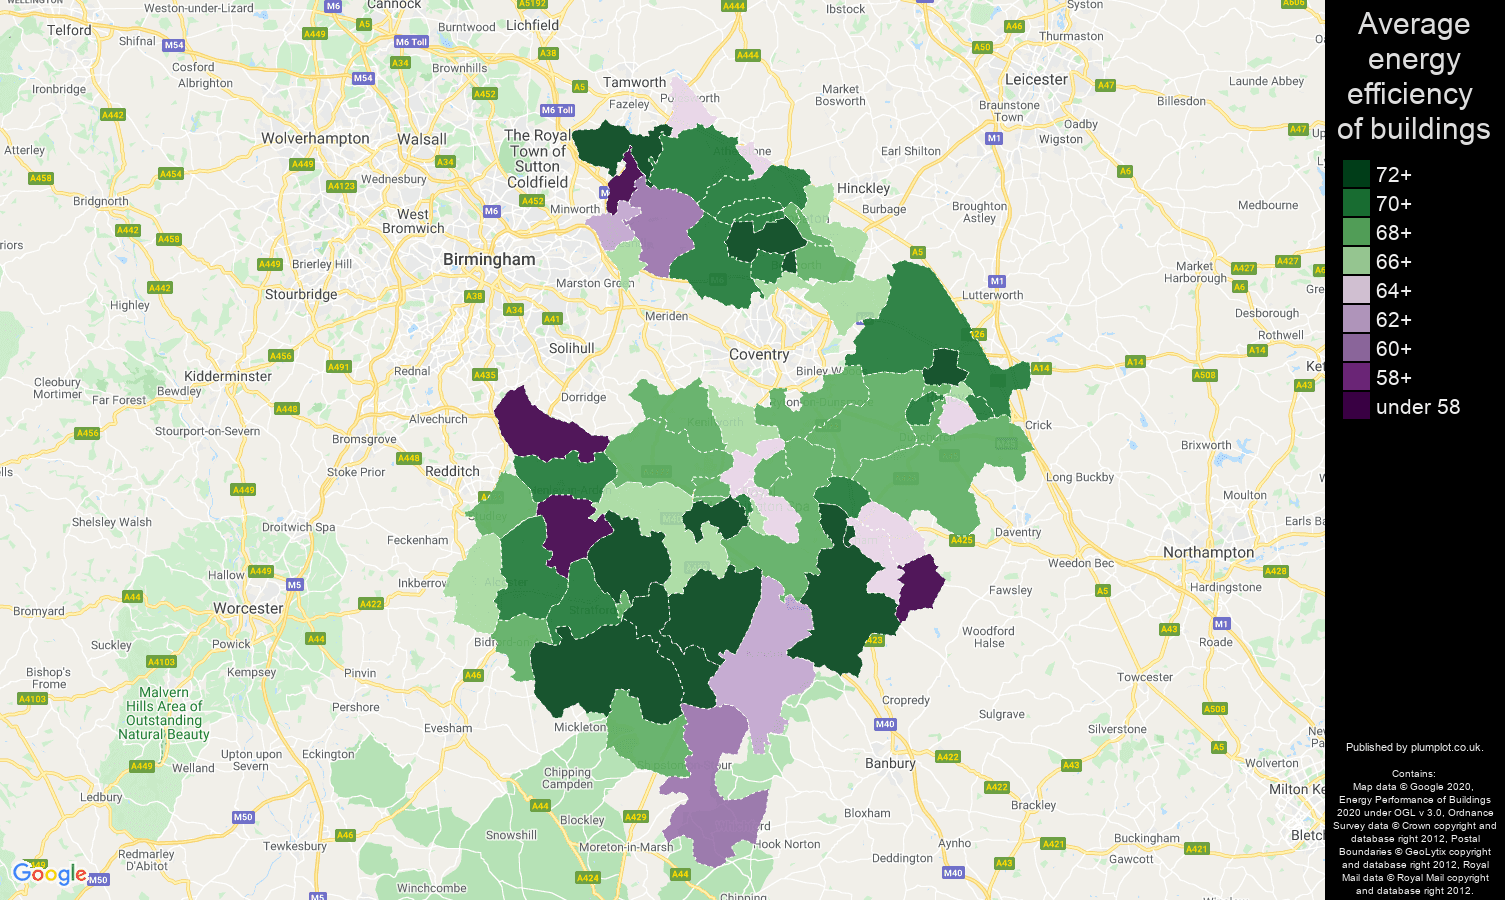 Warwickshire map of energy efficiency of flats